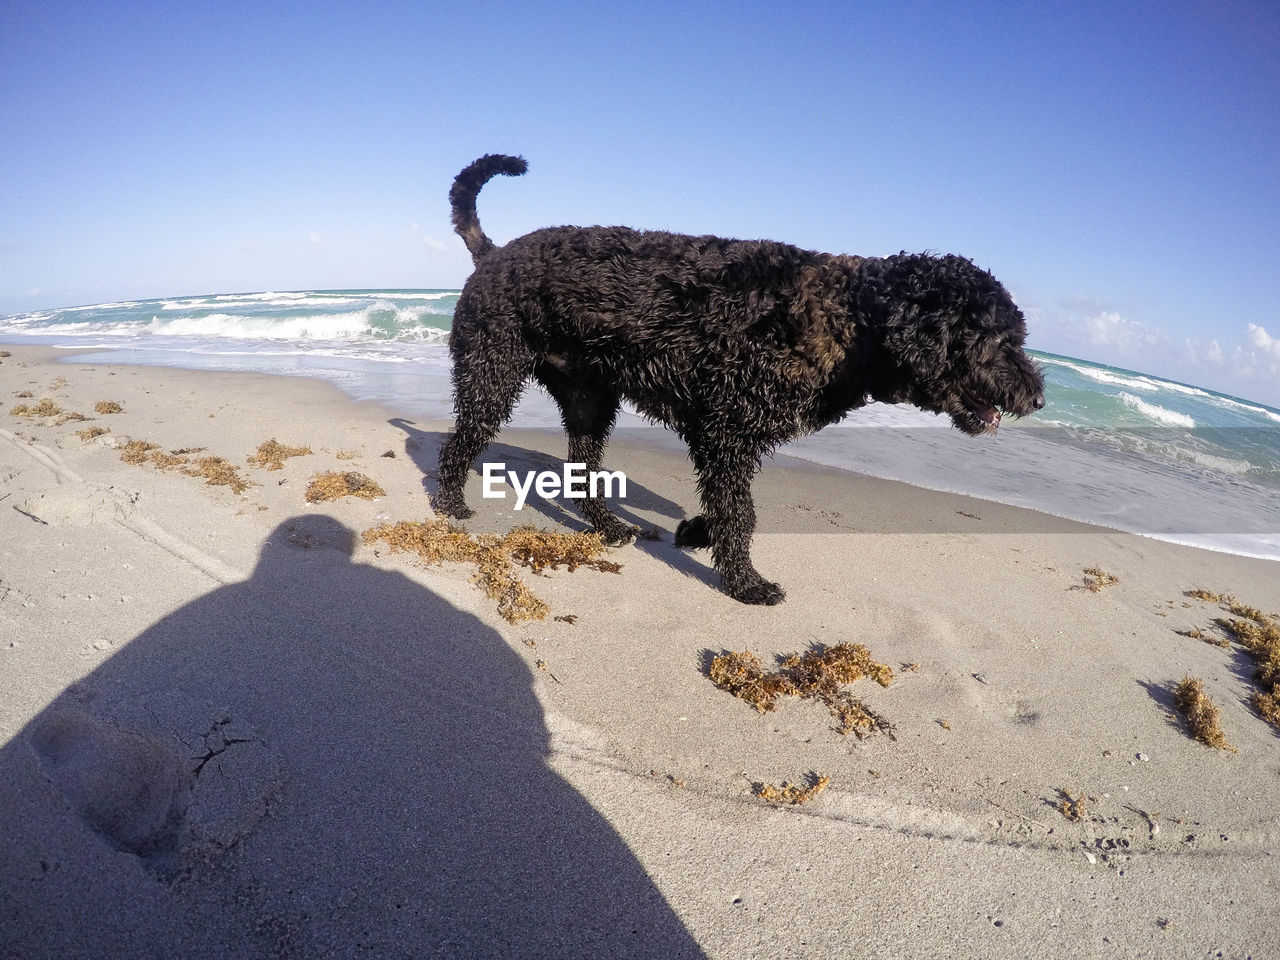 Profile view of wet dog walking on beach